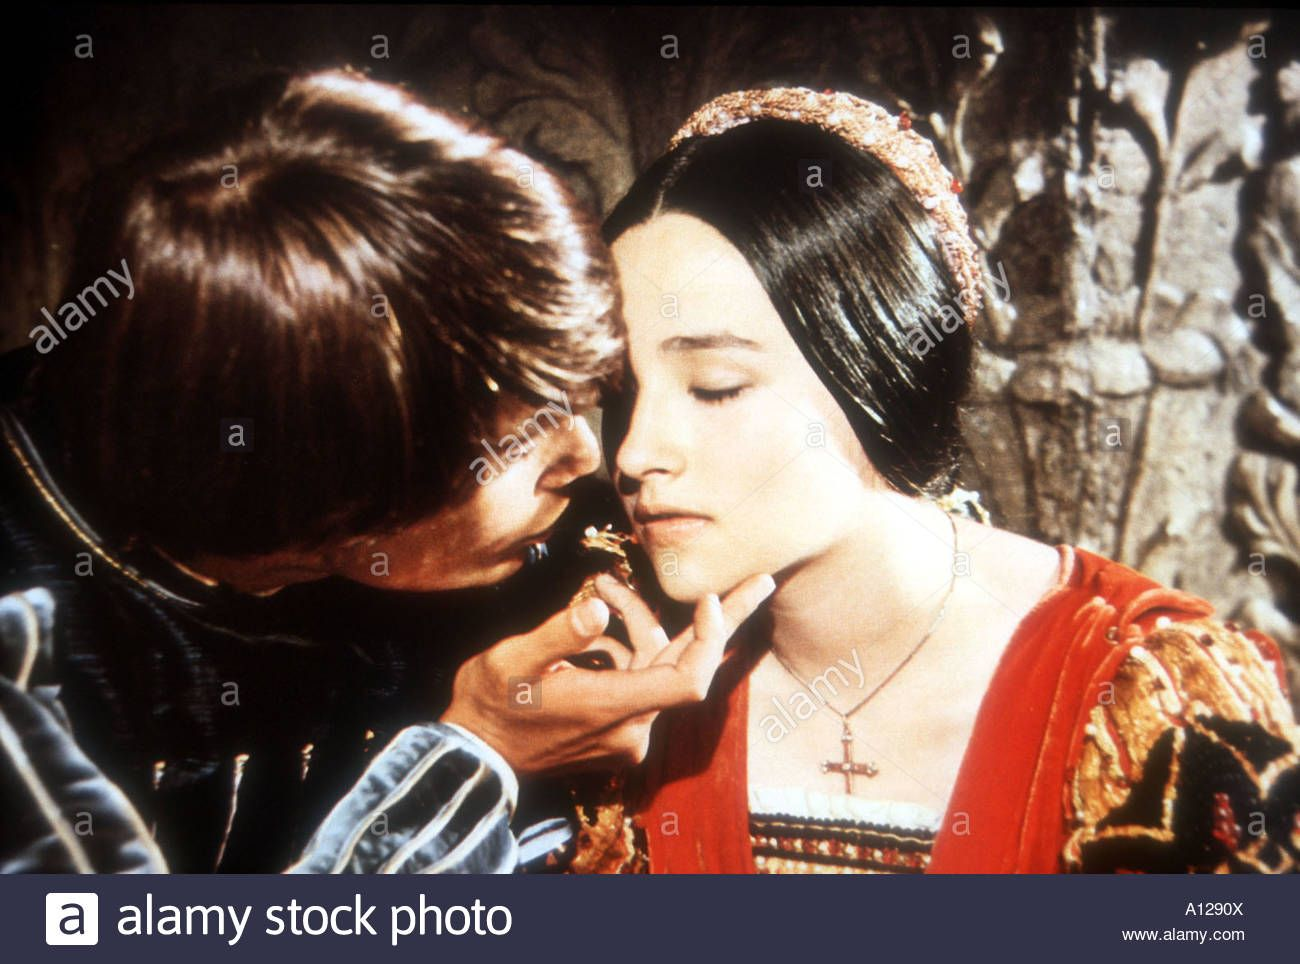 Download this stock image romeo and juliet year 1967